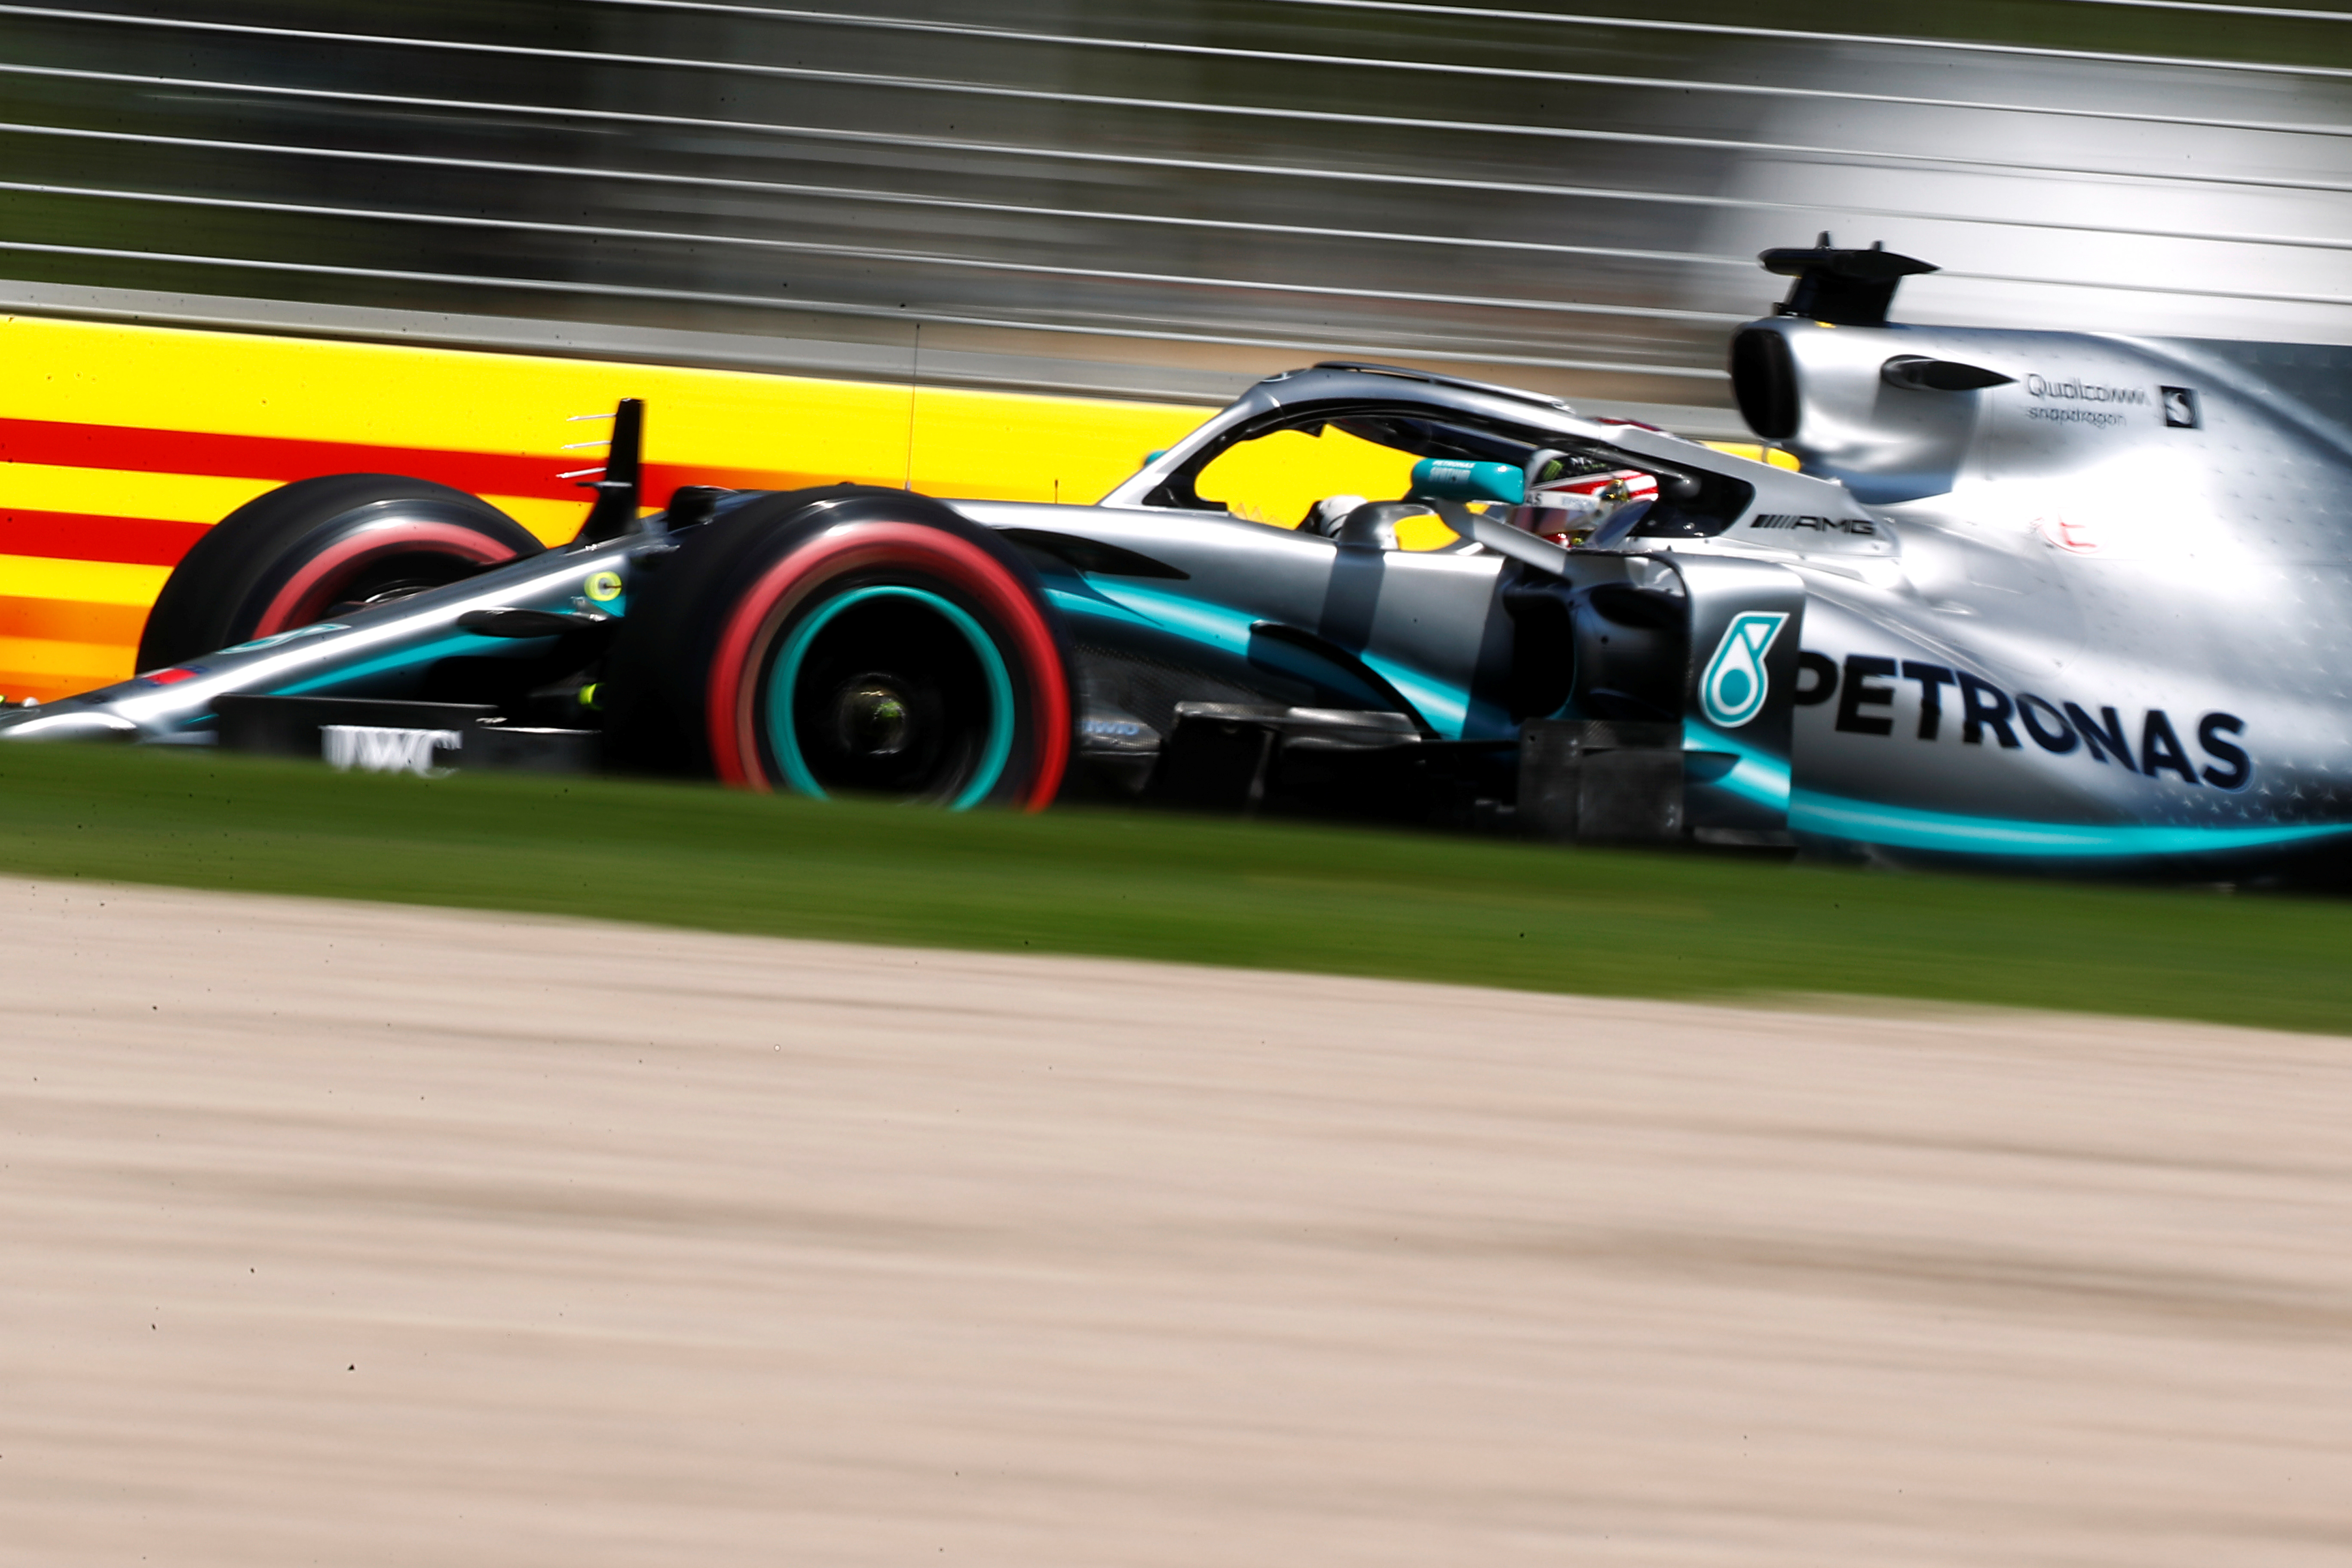 Hamilton tops timesheets in first free practice   The Star